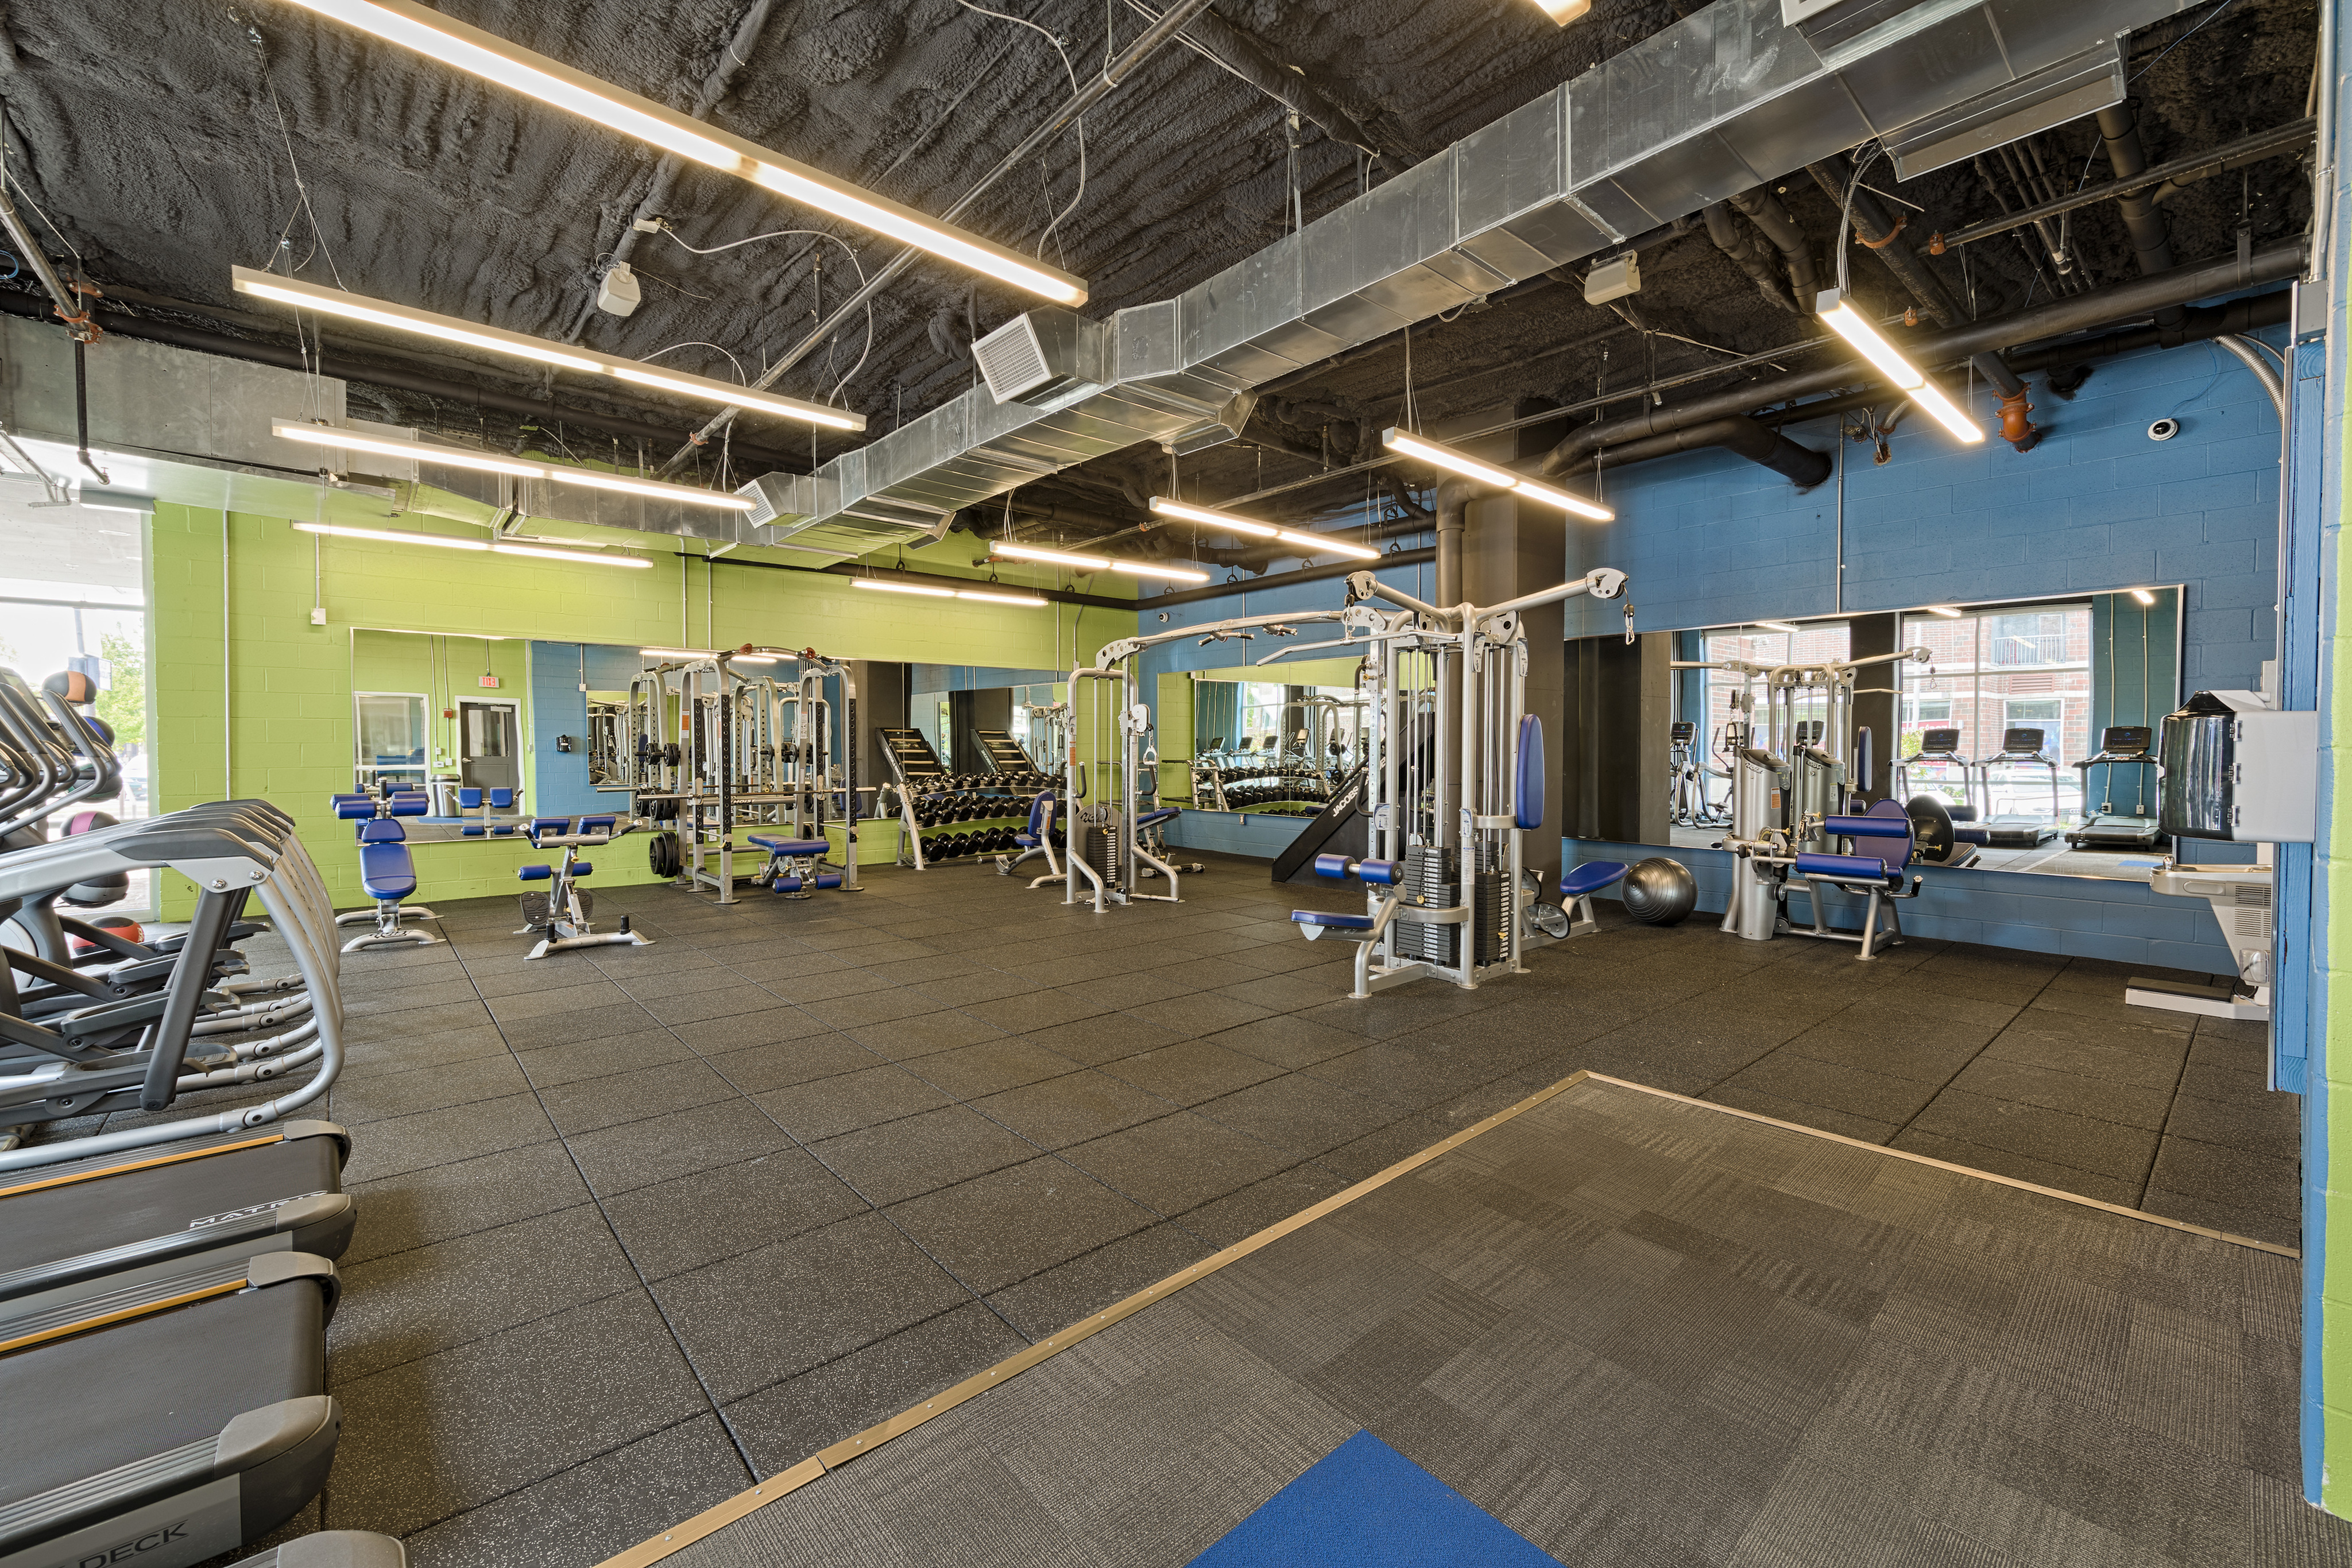 Image of 24/7 Fitness Center & Fitness On Demand for Latitude